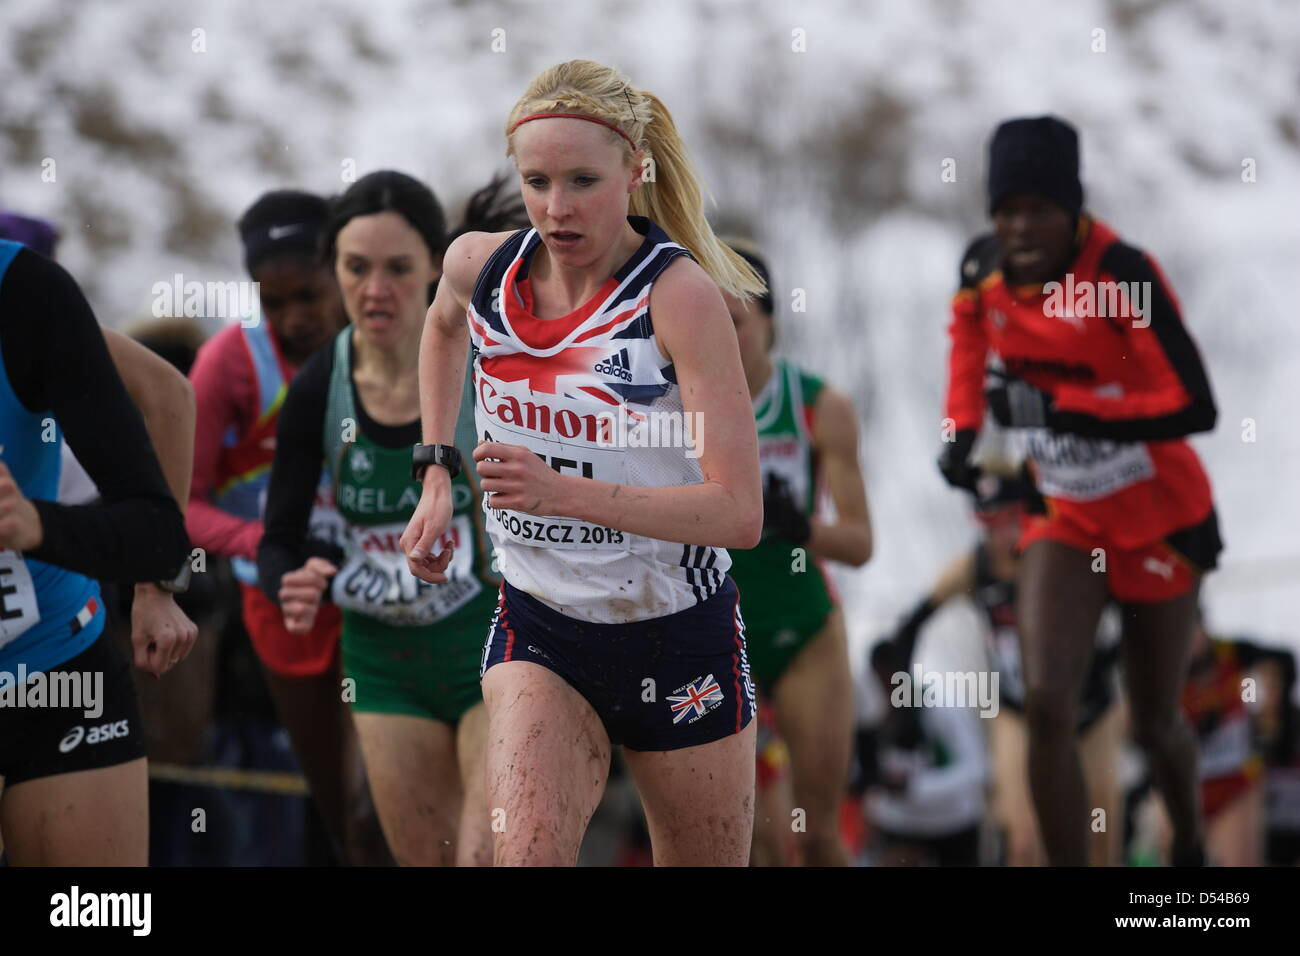 Bydgoszcz, Poland 24th, March 2013 IAAF World Cross Country Chamiponships. Senior Race Woman.  Pictured: Gemma Steel - Stock Image